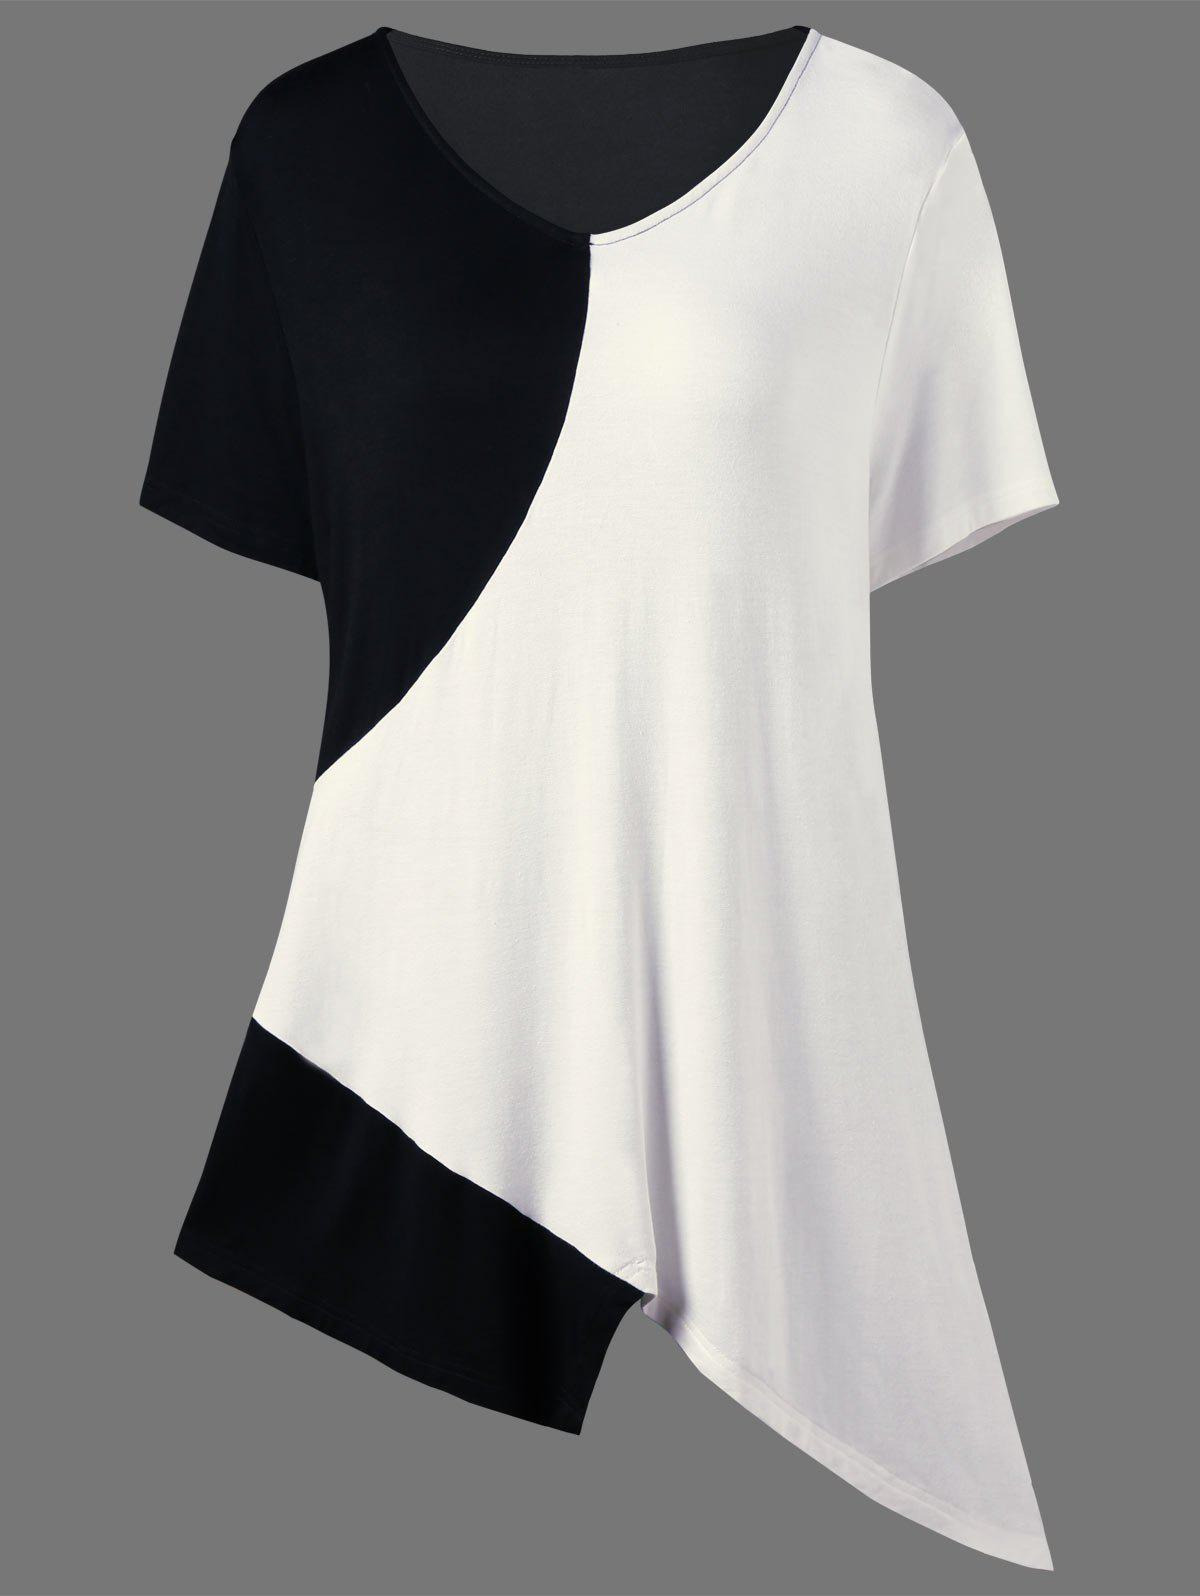 Asymmetrical Color Block Plus Size Long T-ShirtWOMEN<br><br>Size: 4XL; Color: WHITE AND BLACK; Material: Cotton,Spandex; Shirt Length: Long; Sleeve Length: Short; Collar: V-Neck; Style: Casual; Season: Summer; Pattern Type: Others; Weight: 0.2000kg; Package Contents: 1 x T-Shirt;